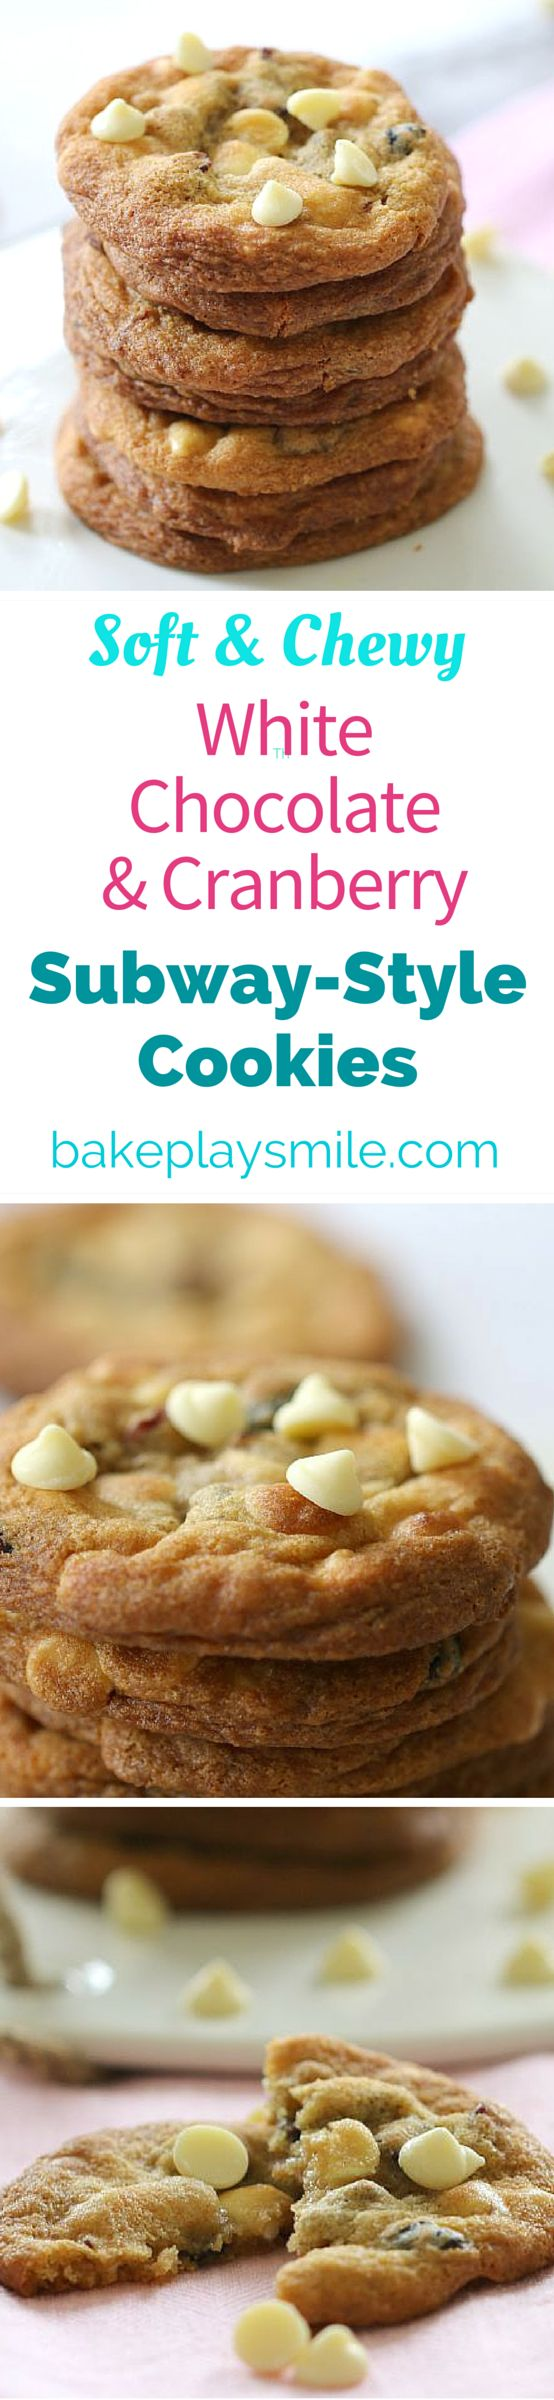 These Soft & Chewy Subway-Style White Chocolate & Cranberry Cookies